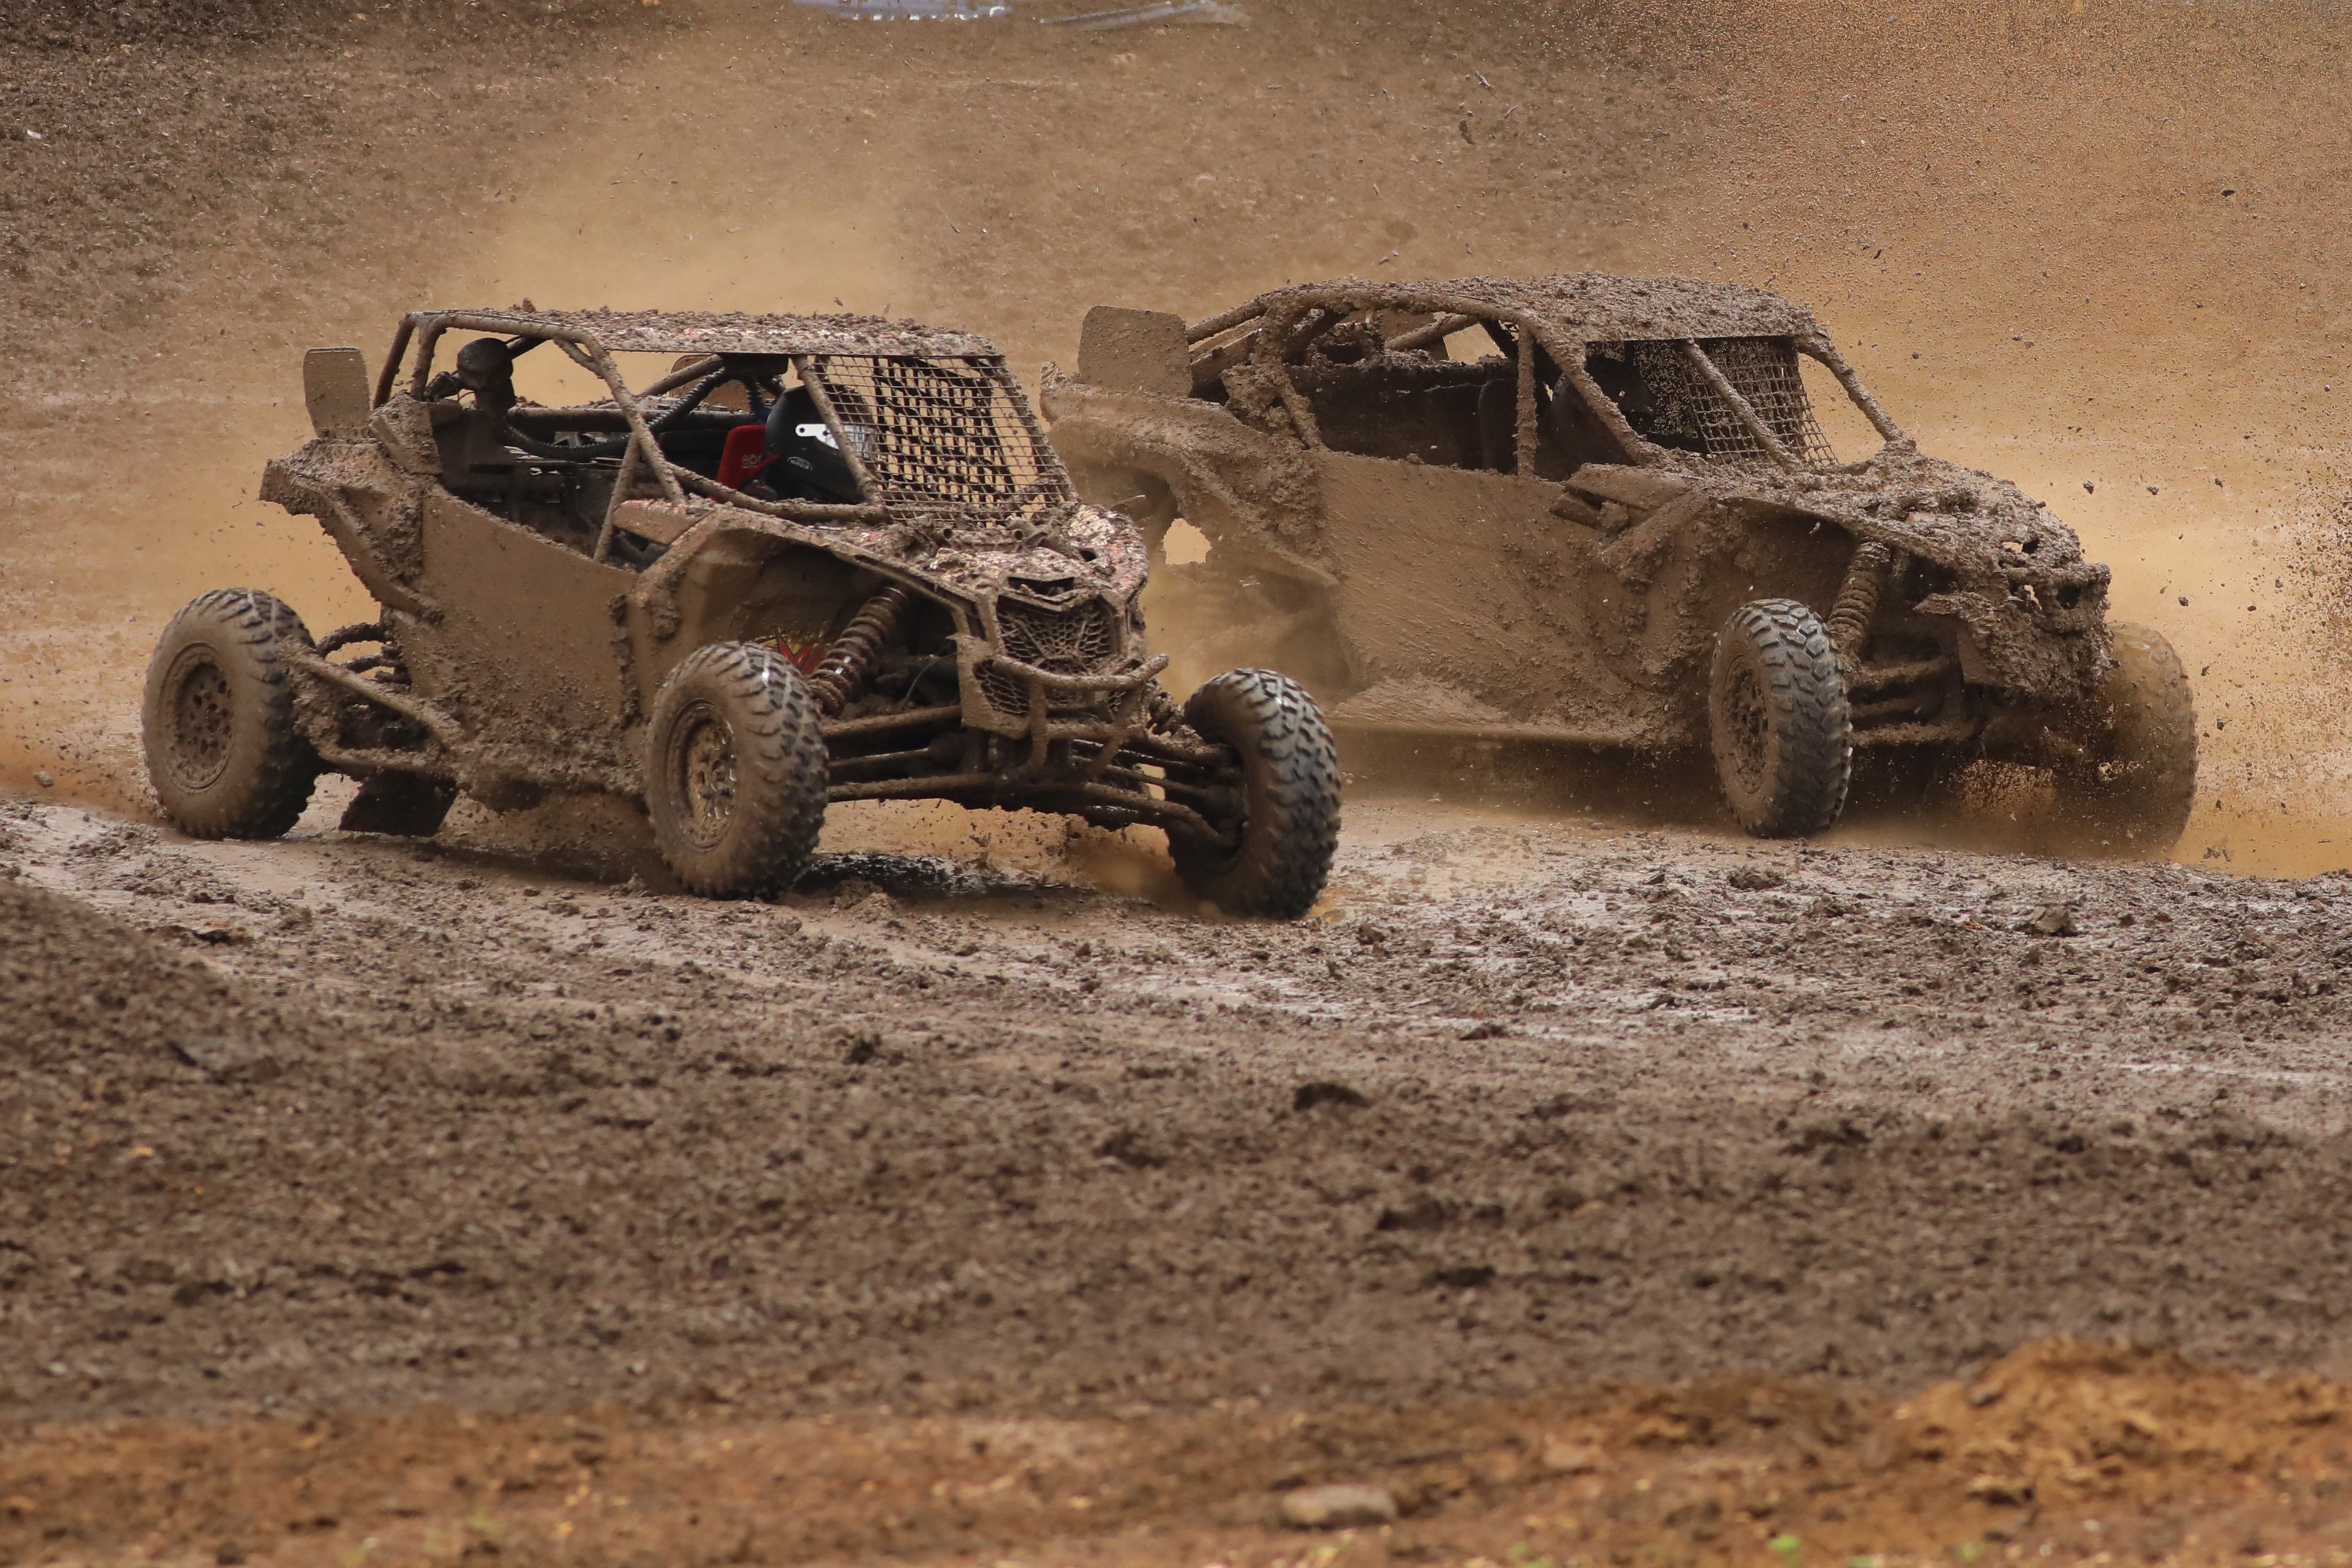 BRP - Can-Am - Maverick X3 - Side-by-Side - Farr W Chaney